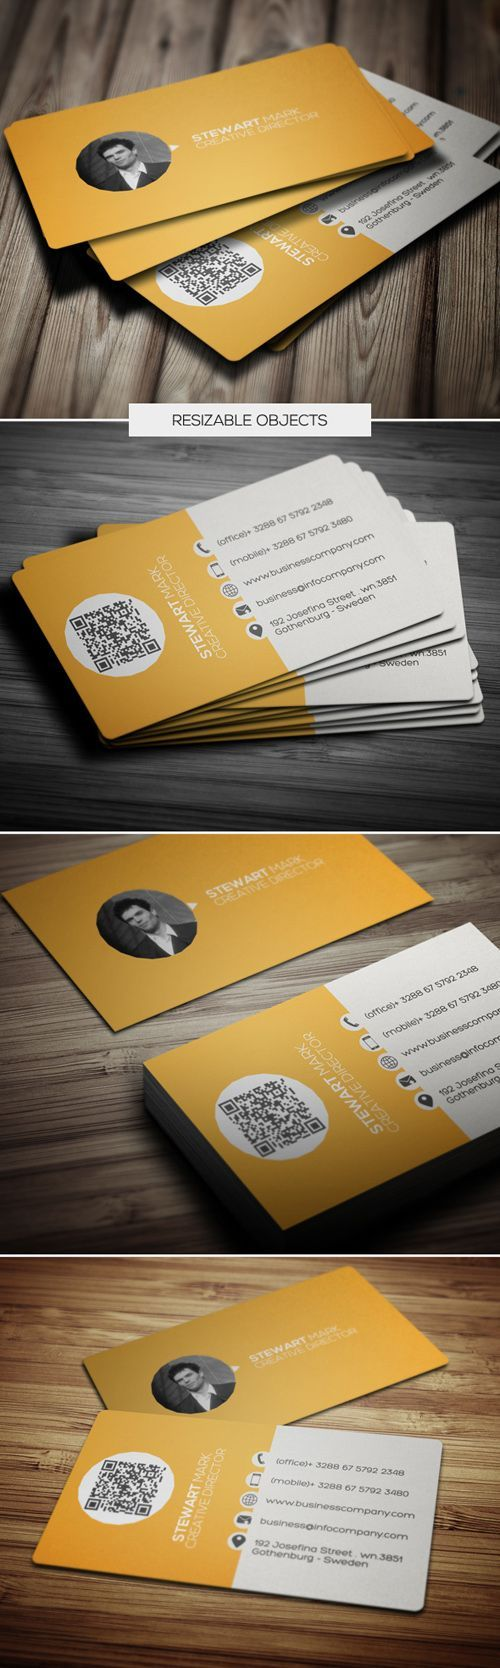 68 Best Unique Business Card Images On Pinterest Graphics